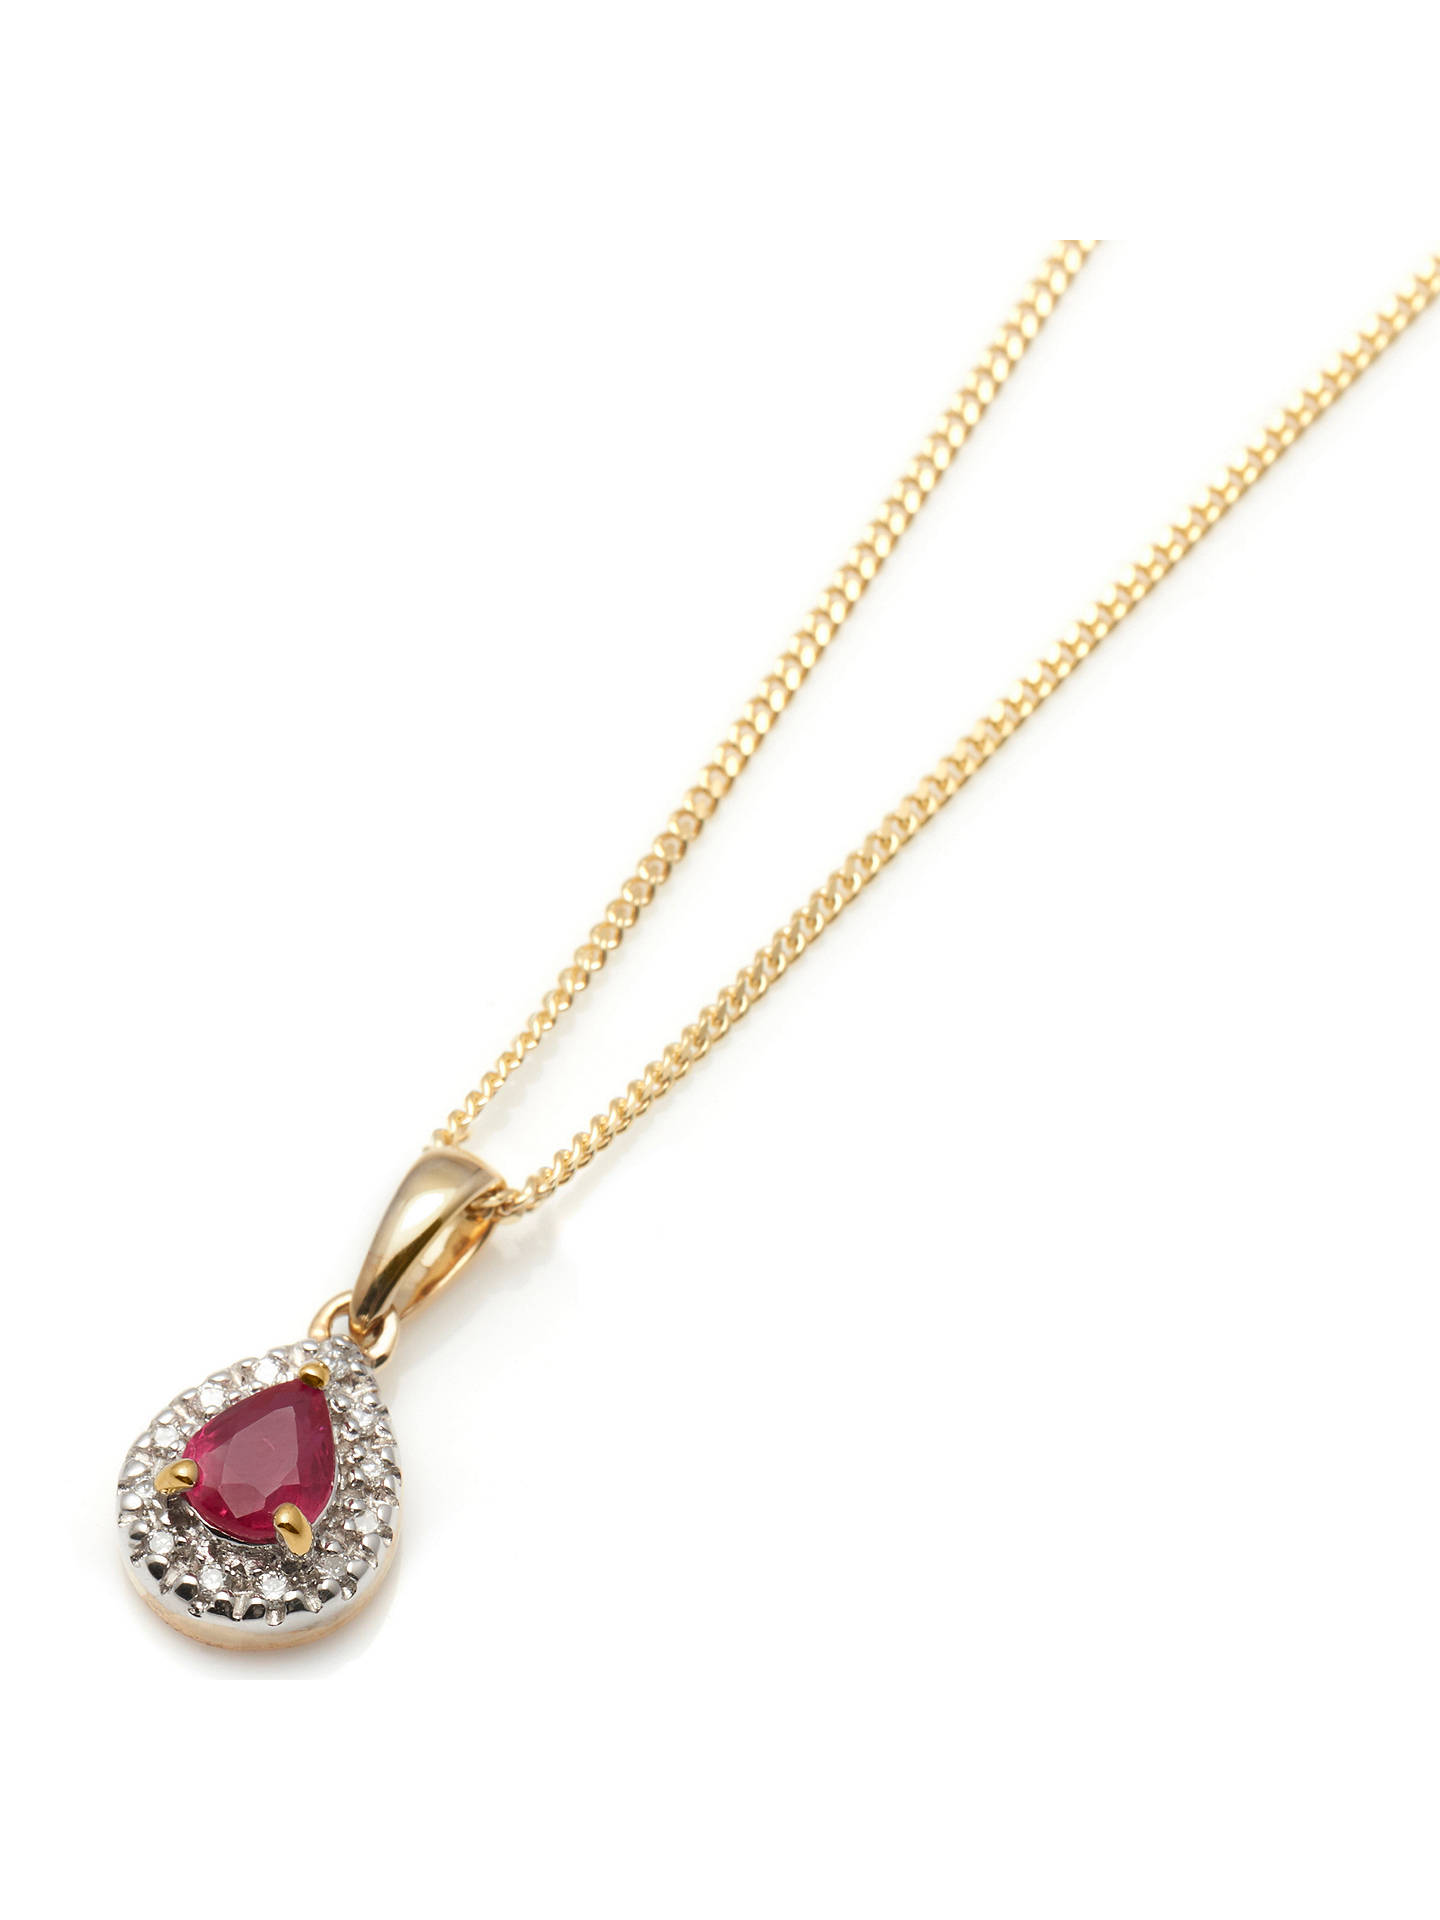 BuyA B Davis 9ct Gold Precious Stone and Diamond Teardrop Pendant Necklace, Yellow Gold/Ruby Online at johnlewis.com